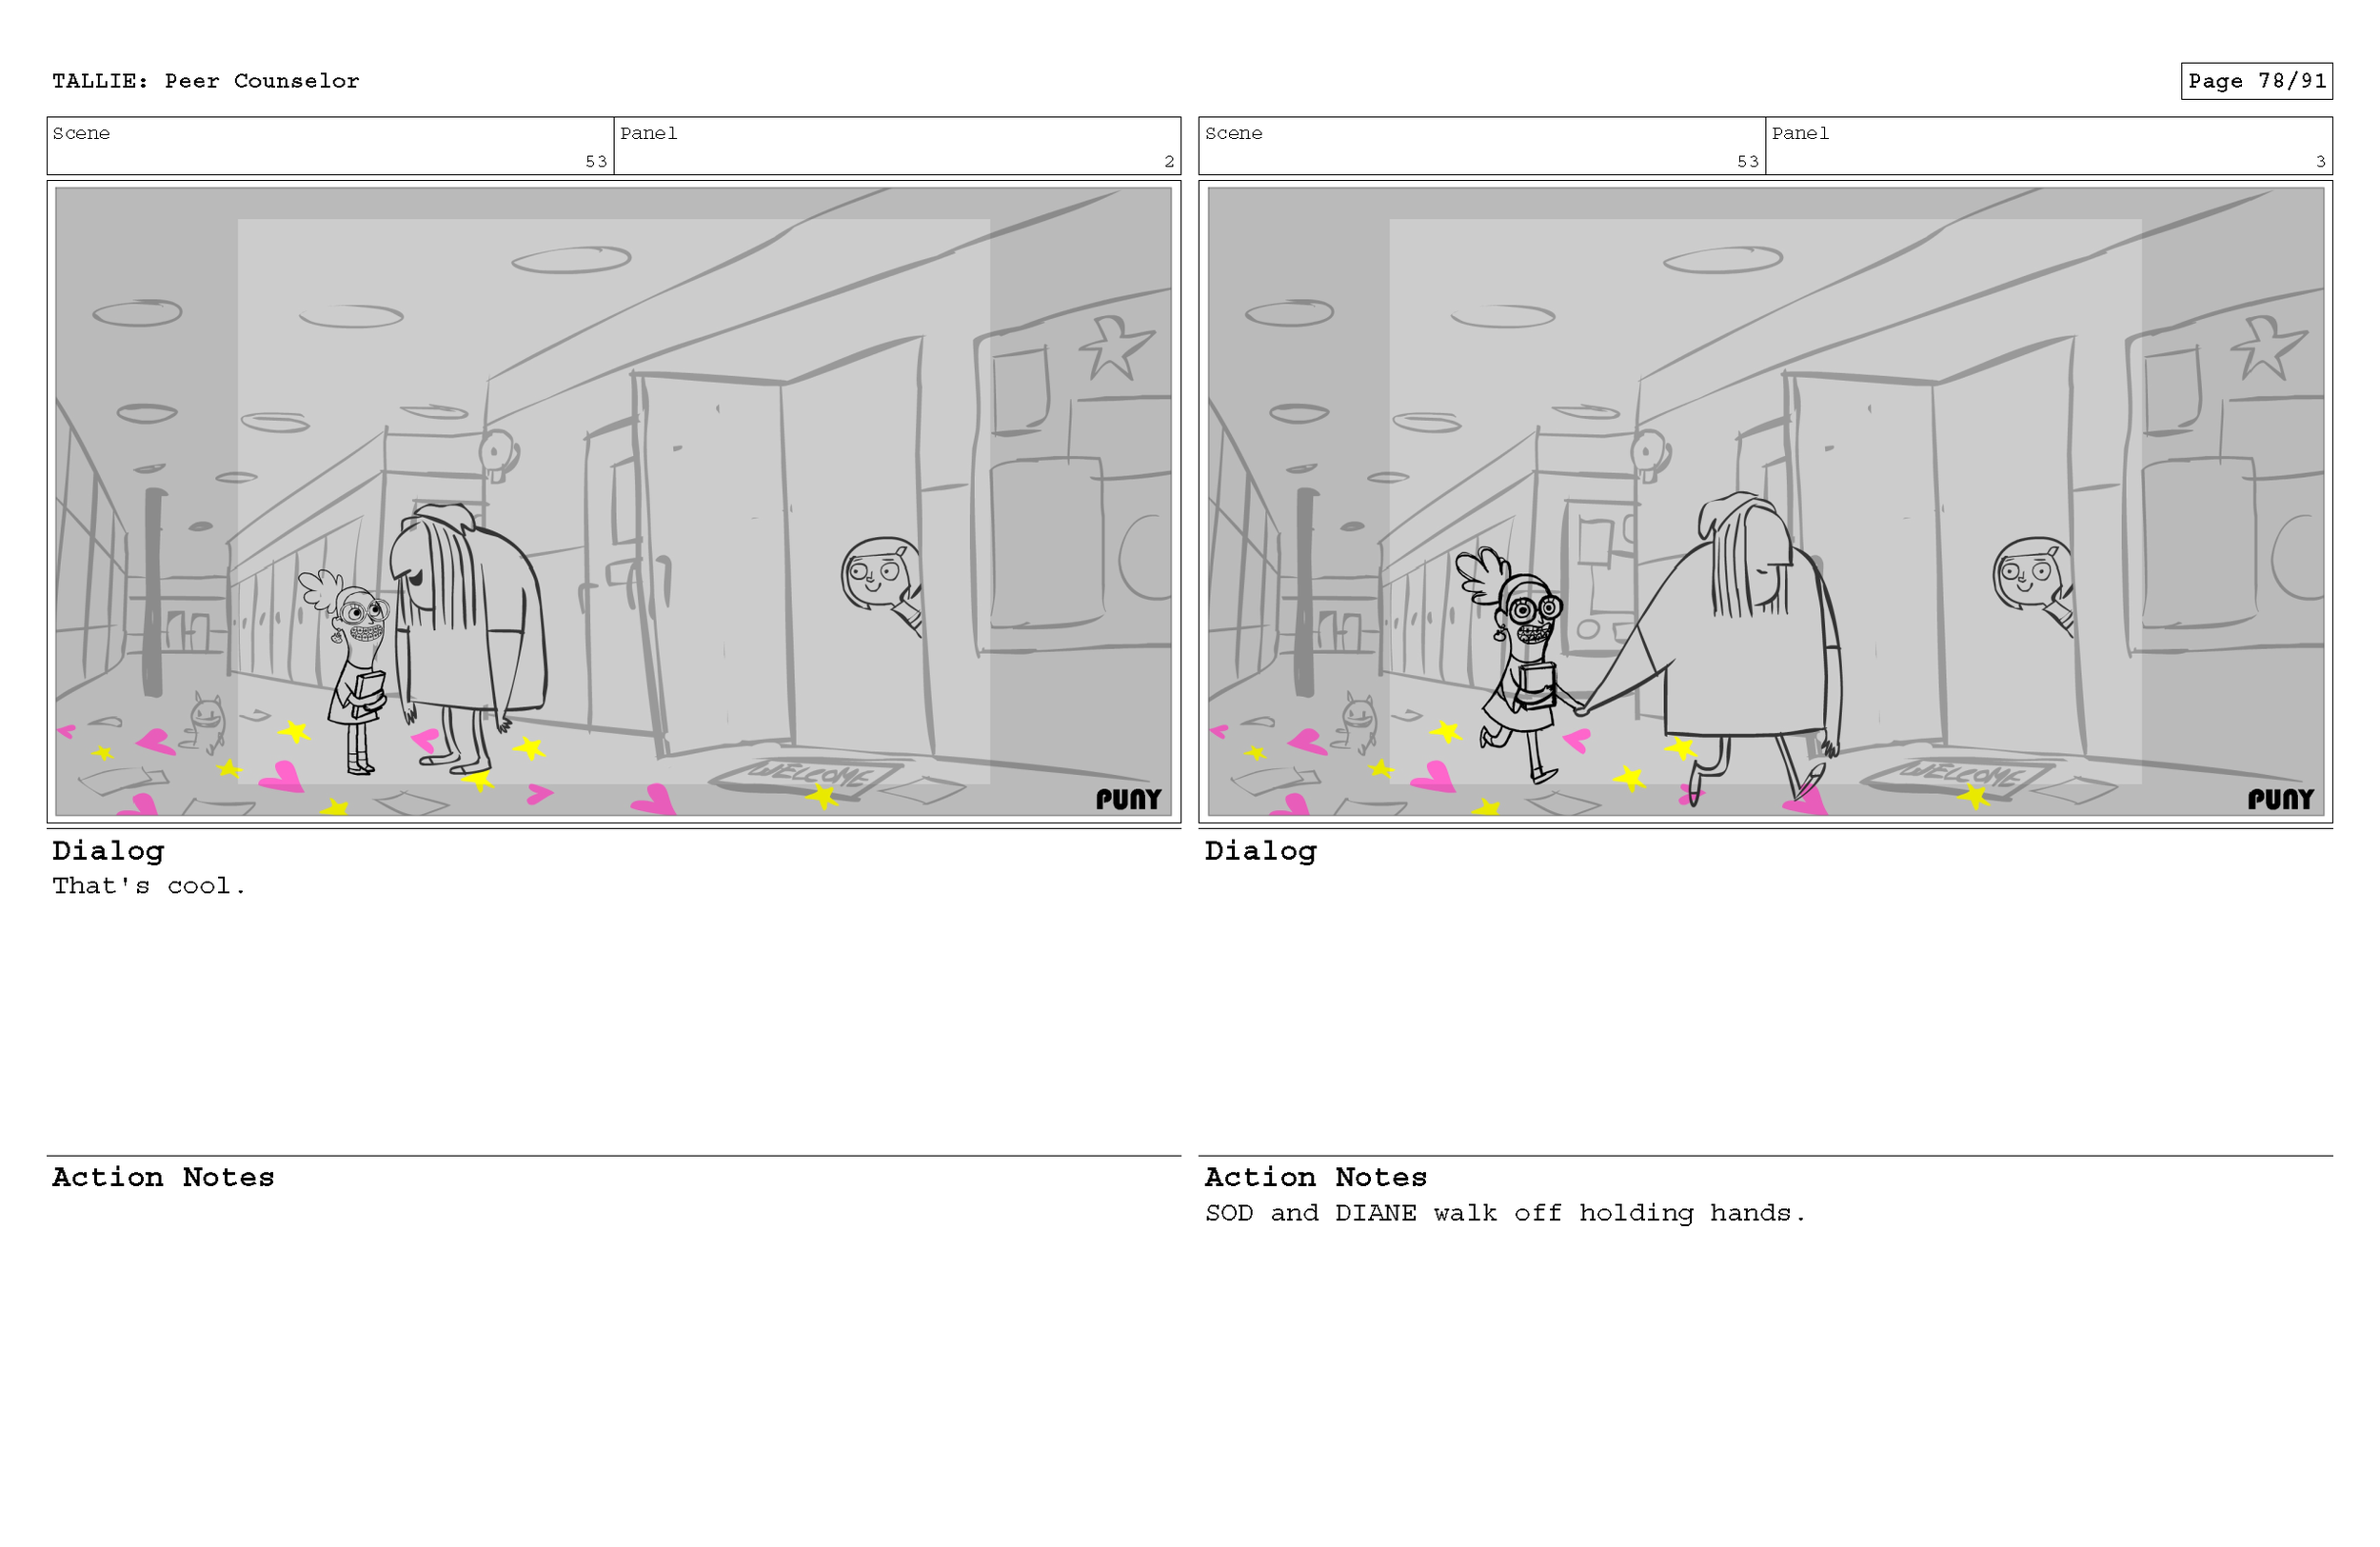 MikeOwens_STORYBOARDS_TallieSilverman_Page_79.png